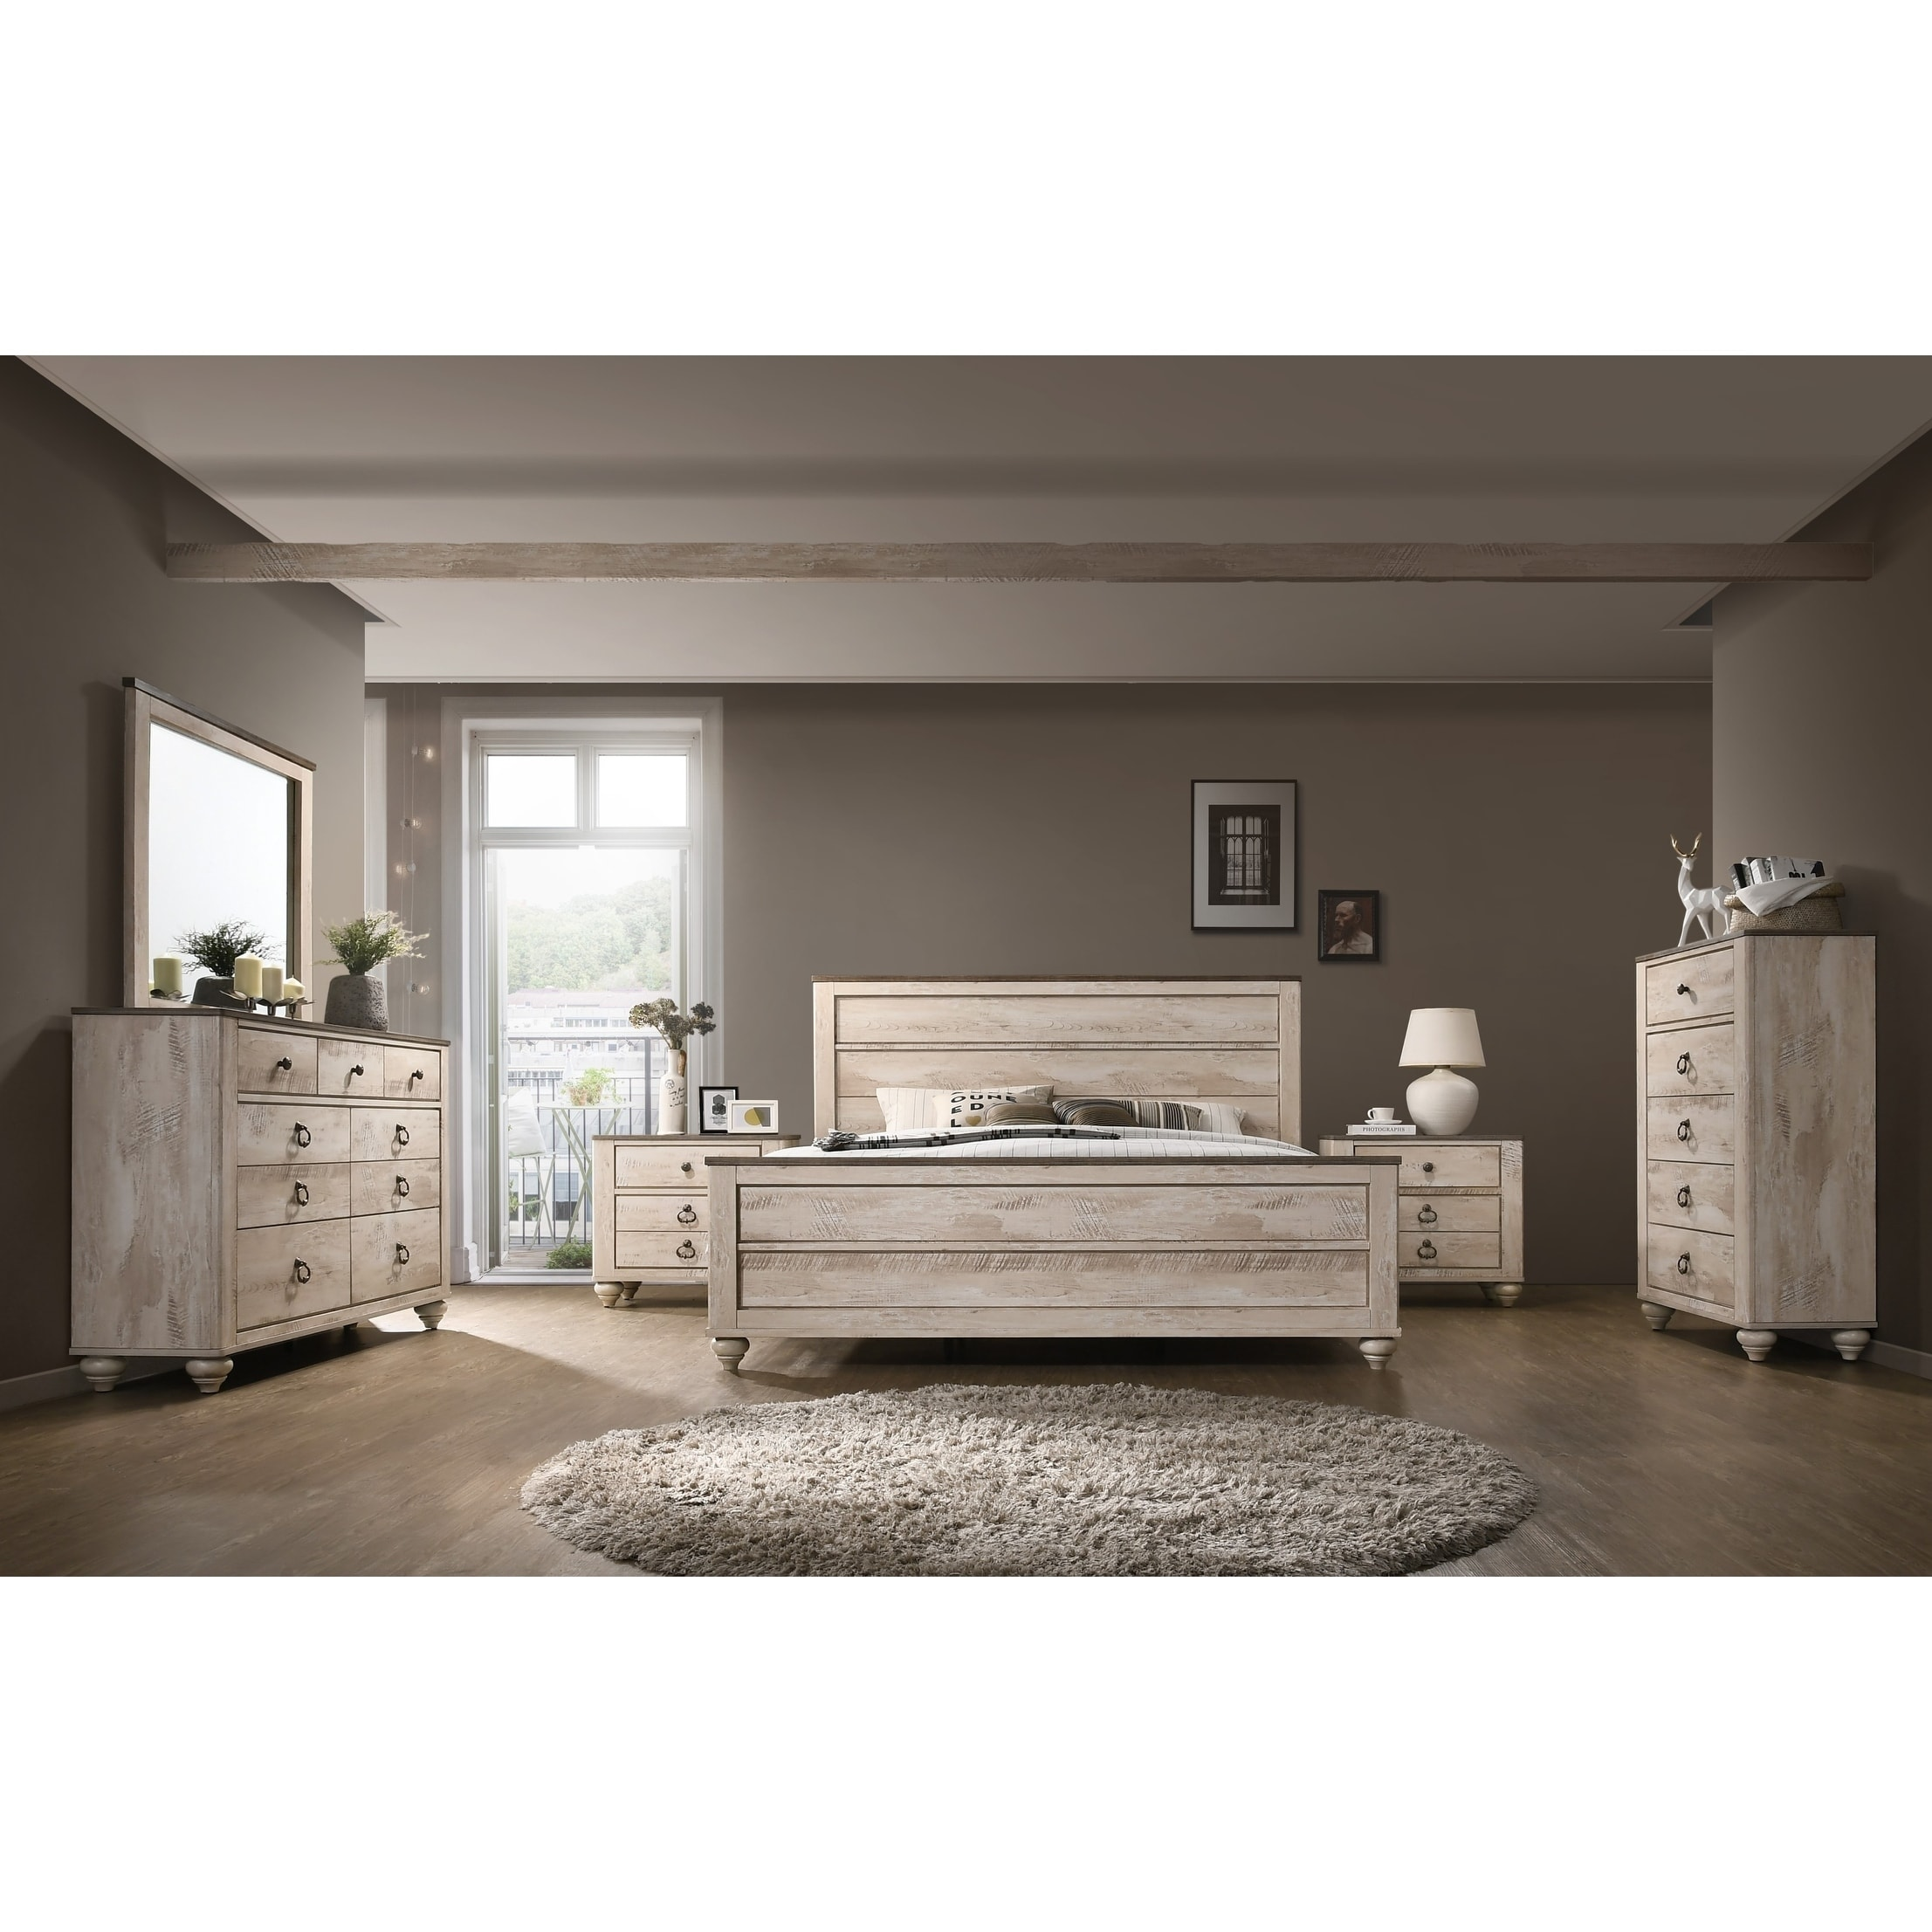 Shop Imerland Contemporary White Wash Finish 6 Piece Bedroom Set King On Sale Overstock 19758673